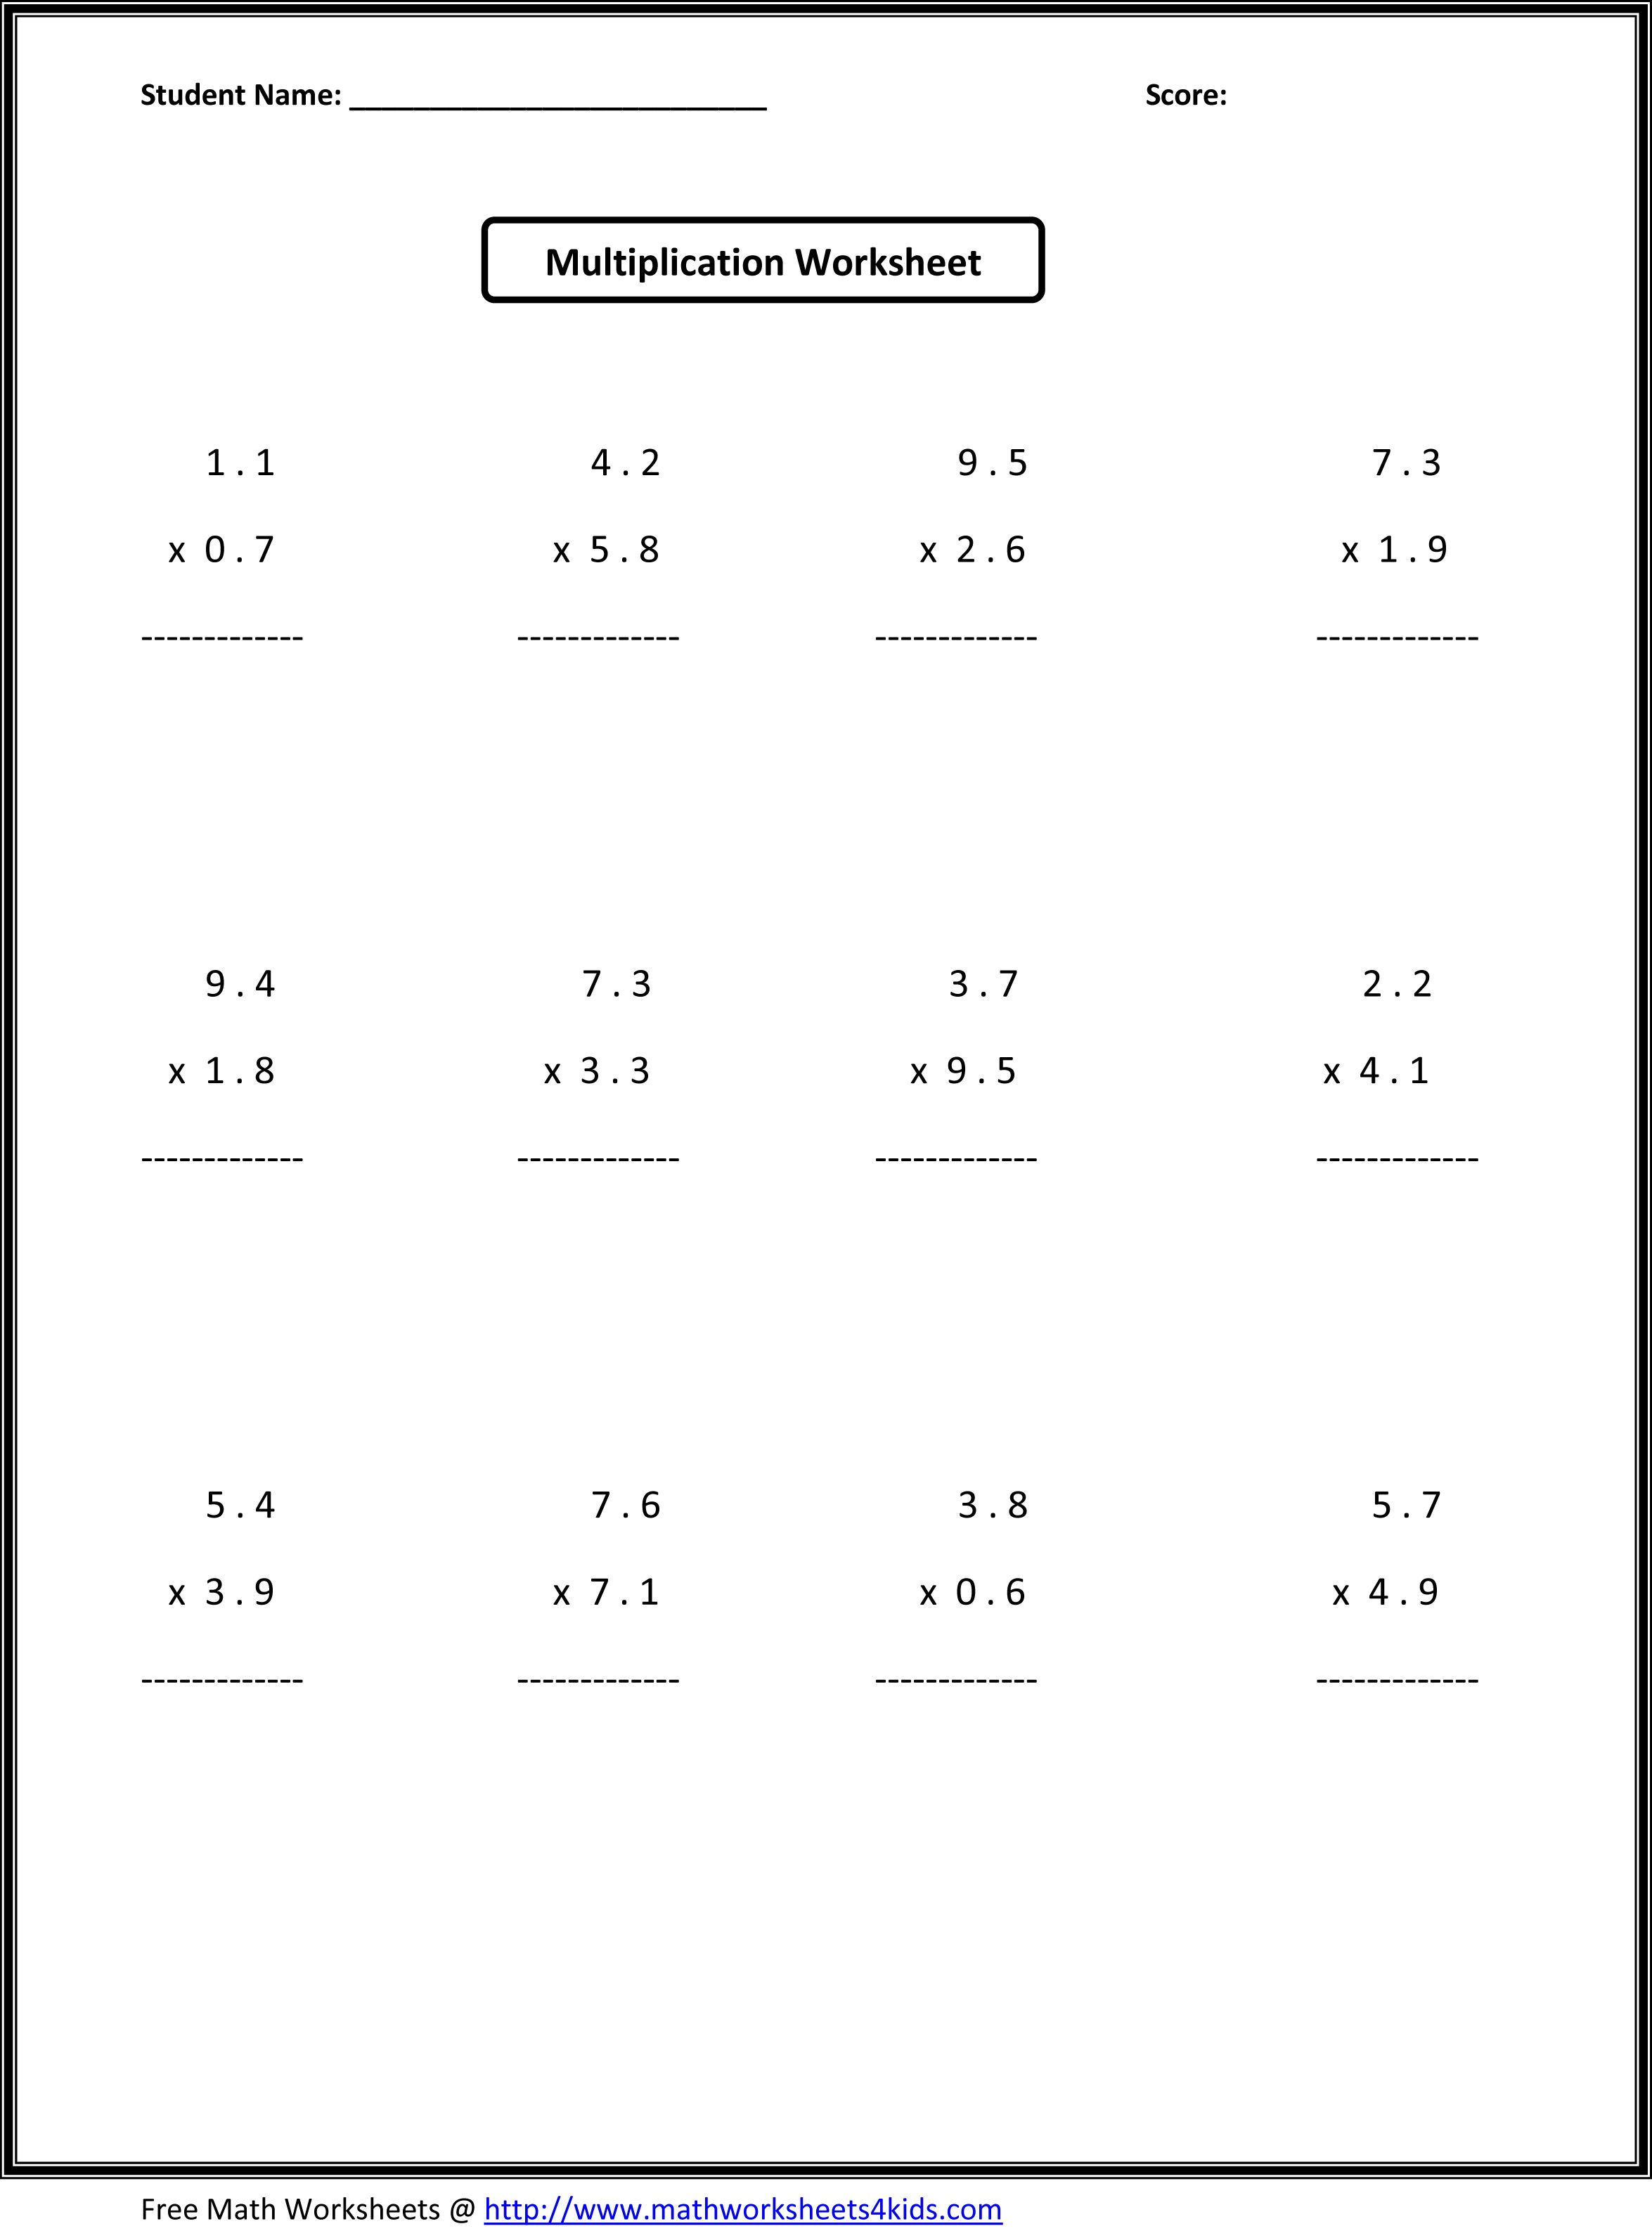 worksheet Math 6th Grade Worksheets 7th grade math worksheets value absolute sixth have ratio multiplying and dividing fractions probability more